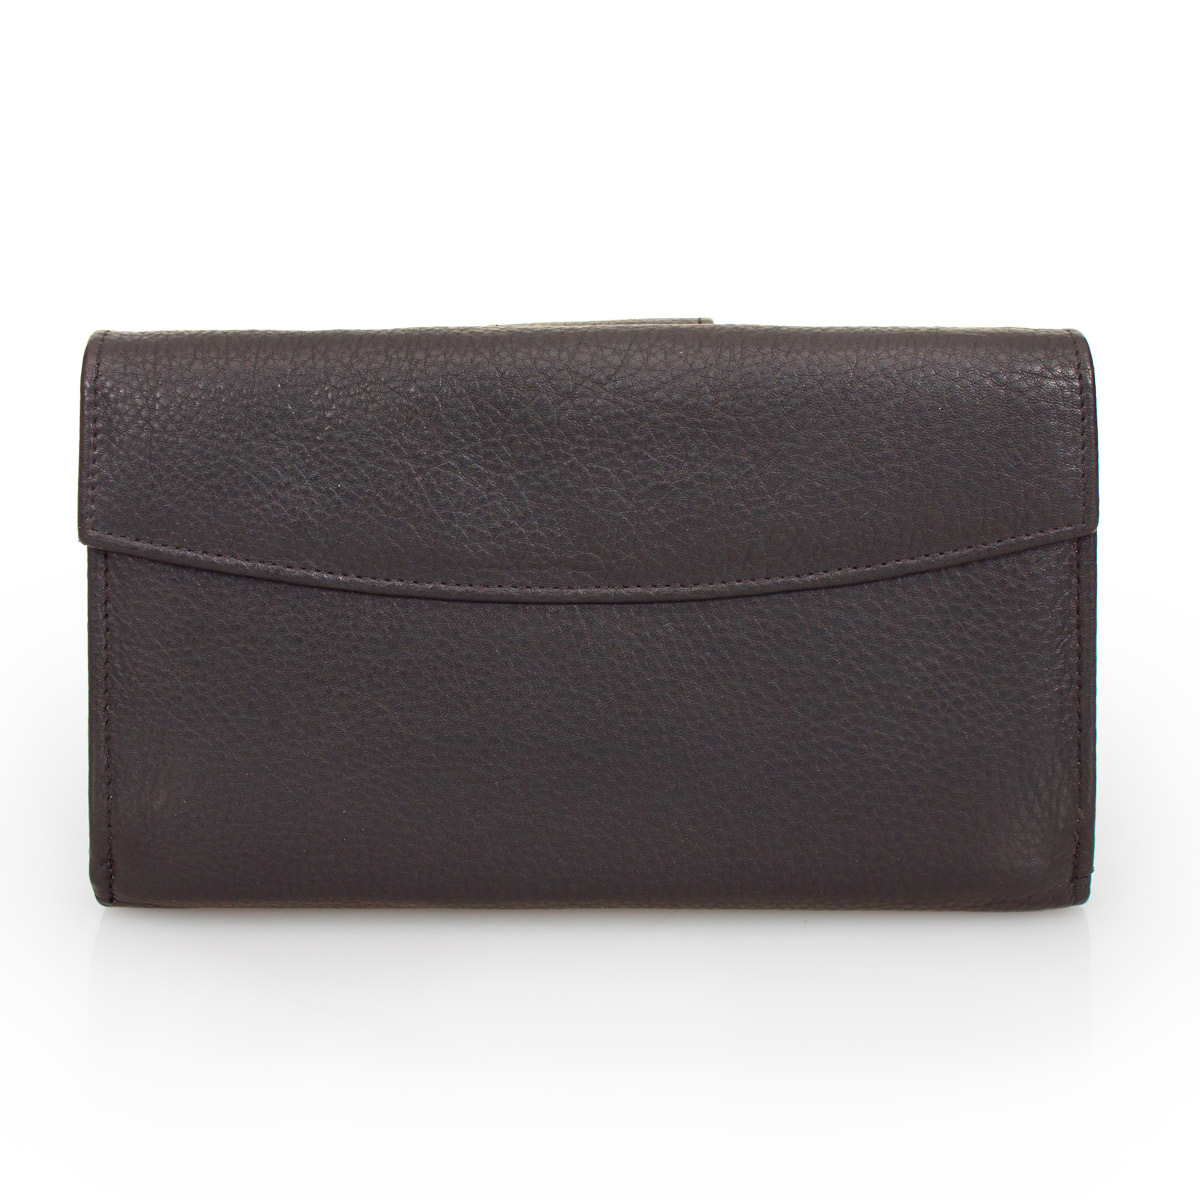 DELBAG Womens Leather Wallet Large Brown – image 3